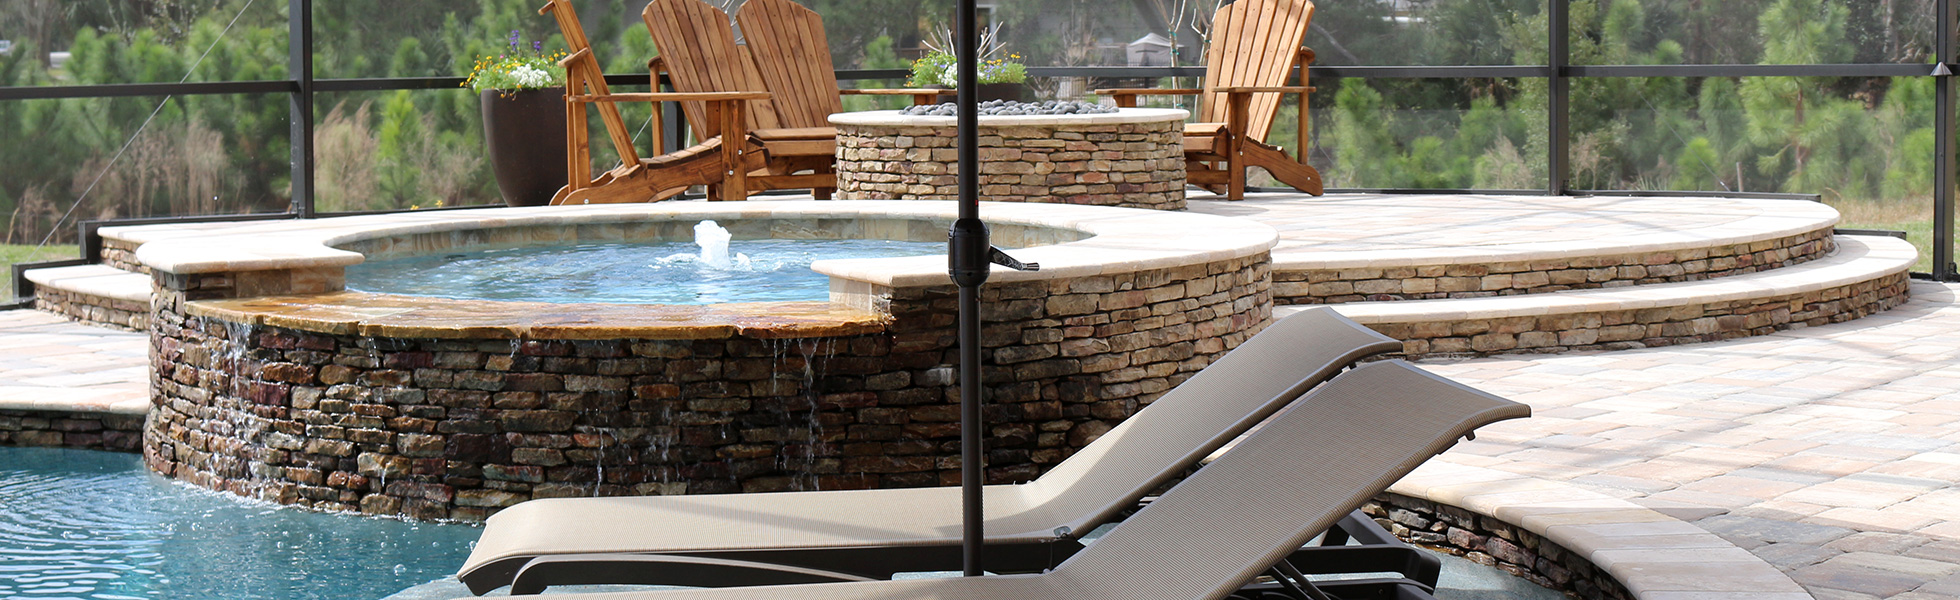 luxury pool builder in orlando fl custom swimming pools